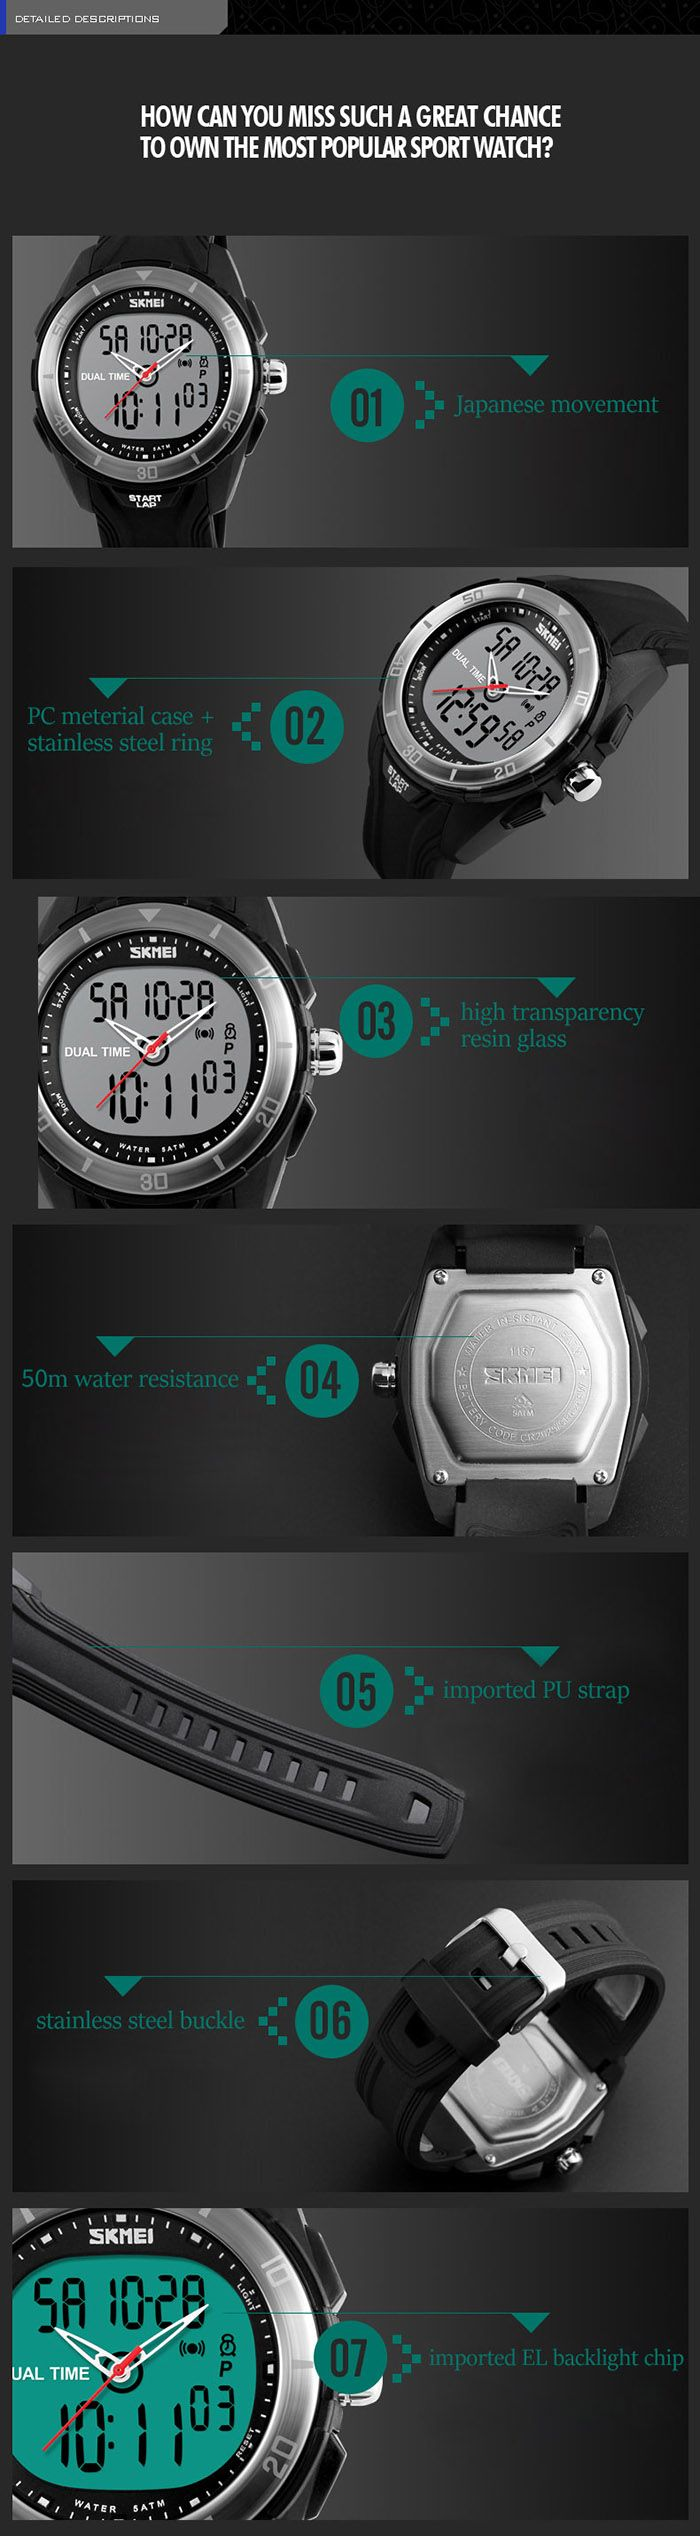 SKMEI 1157 Fashion Dual Time Sports Watch with EL Backlight 50M Water Resistance